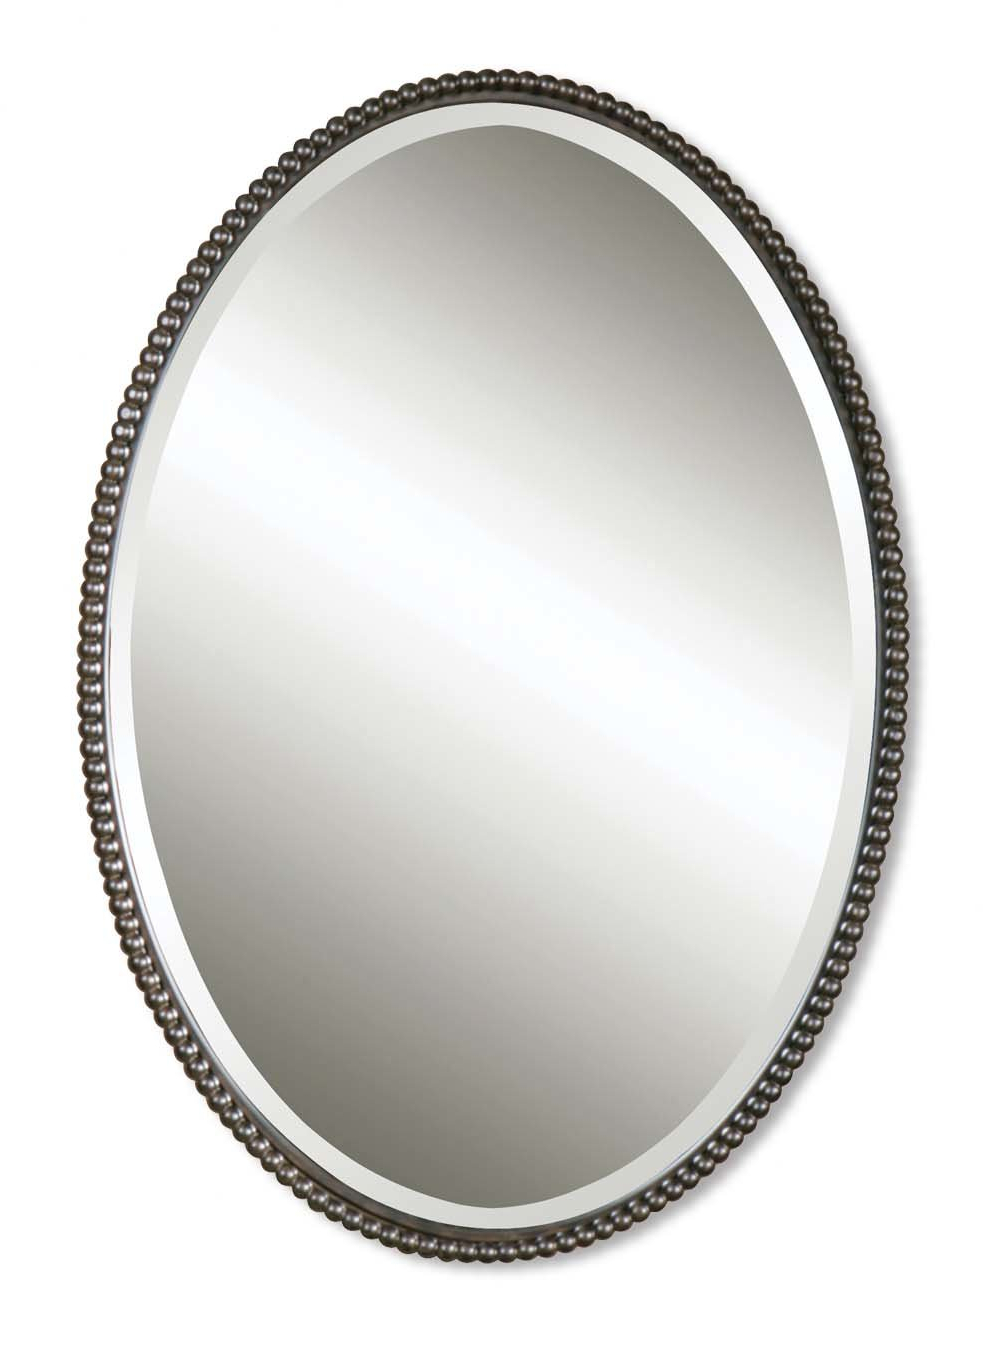 Most Popular Glen View Beaded Oval Traditional Accent Mirror Inside Glen View Beaded Oval Traditional Accent Mirrors (View 12 of 20)